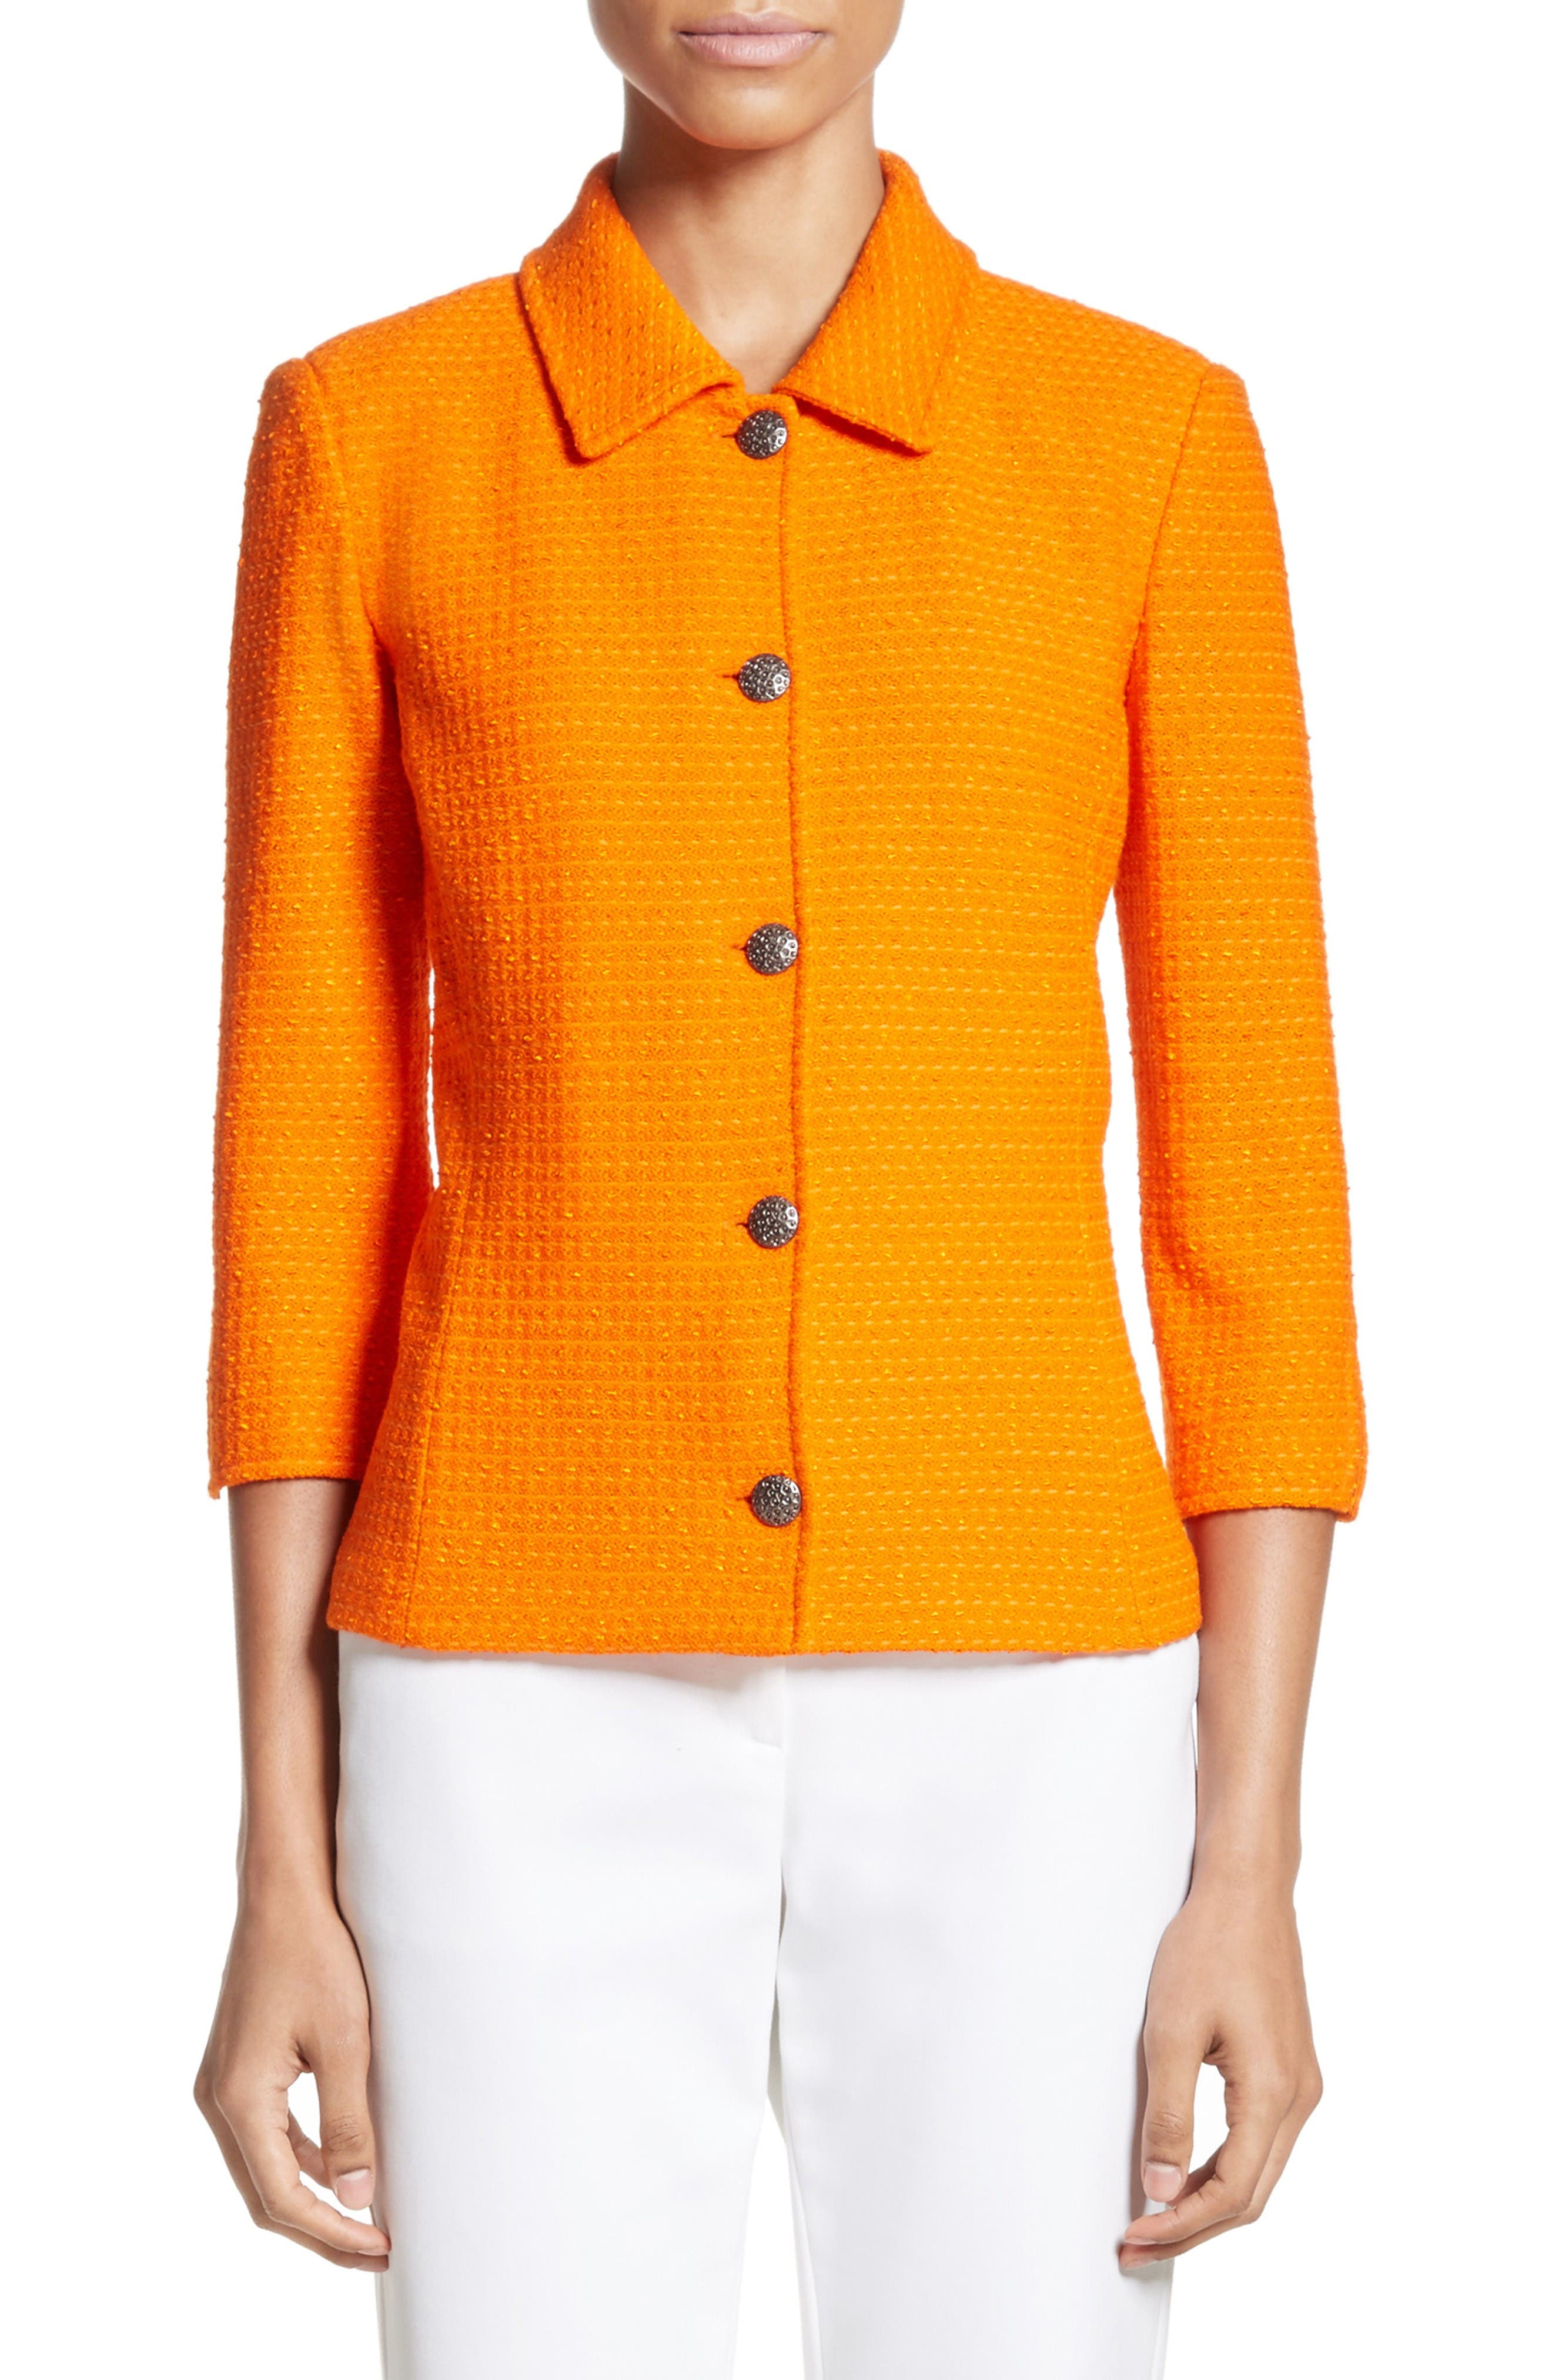 St. John Collection Ribbon Texture Knit Jacket